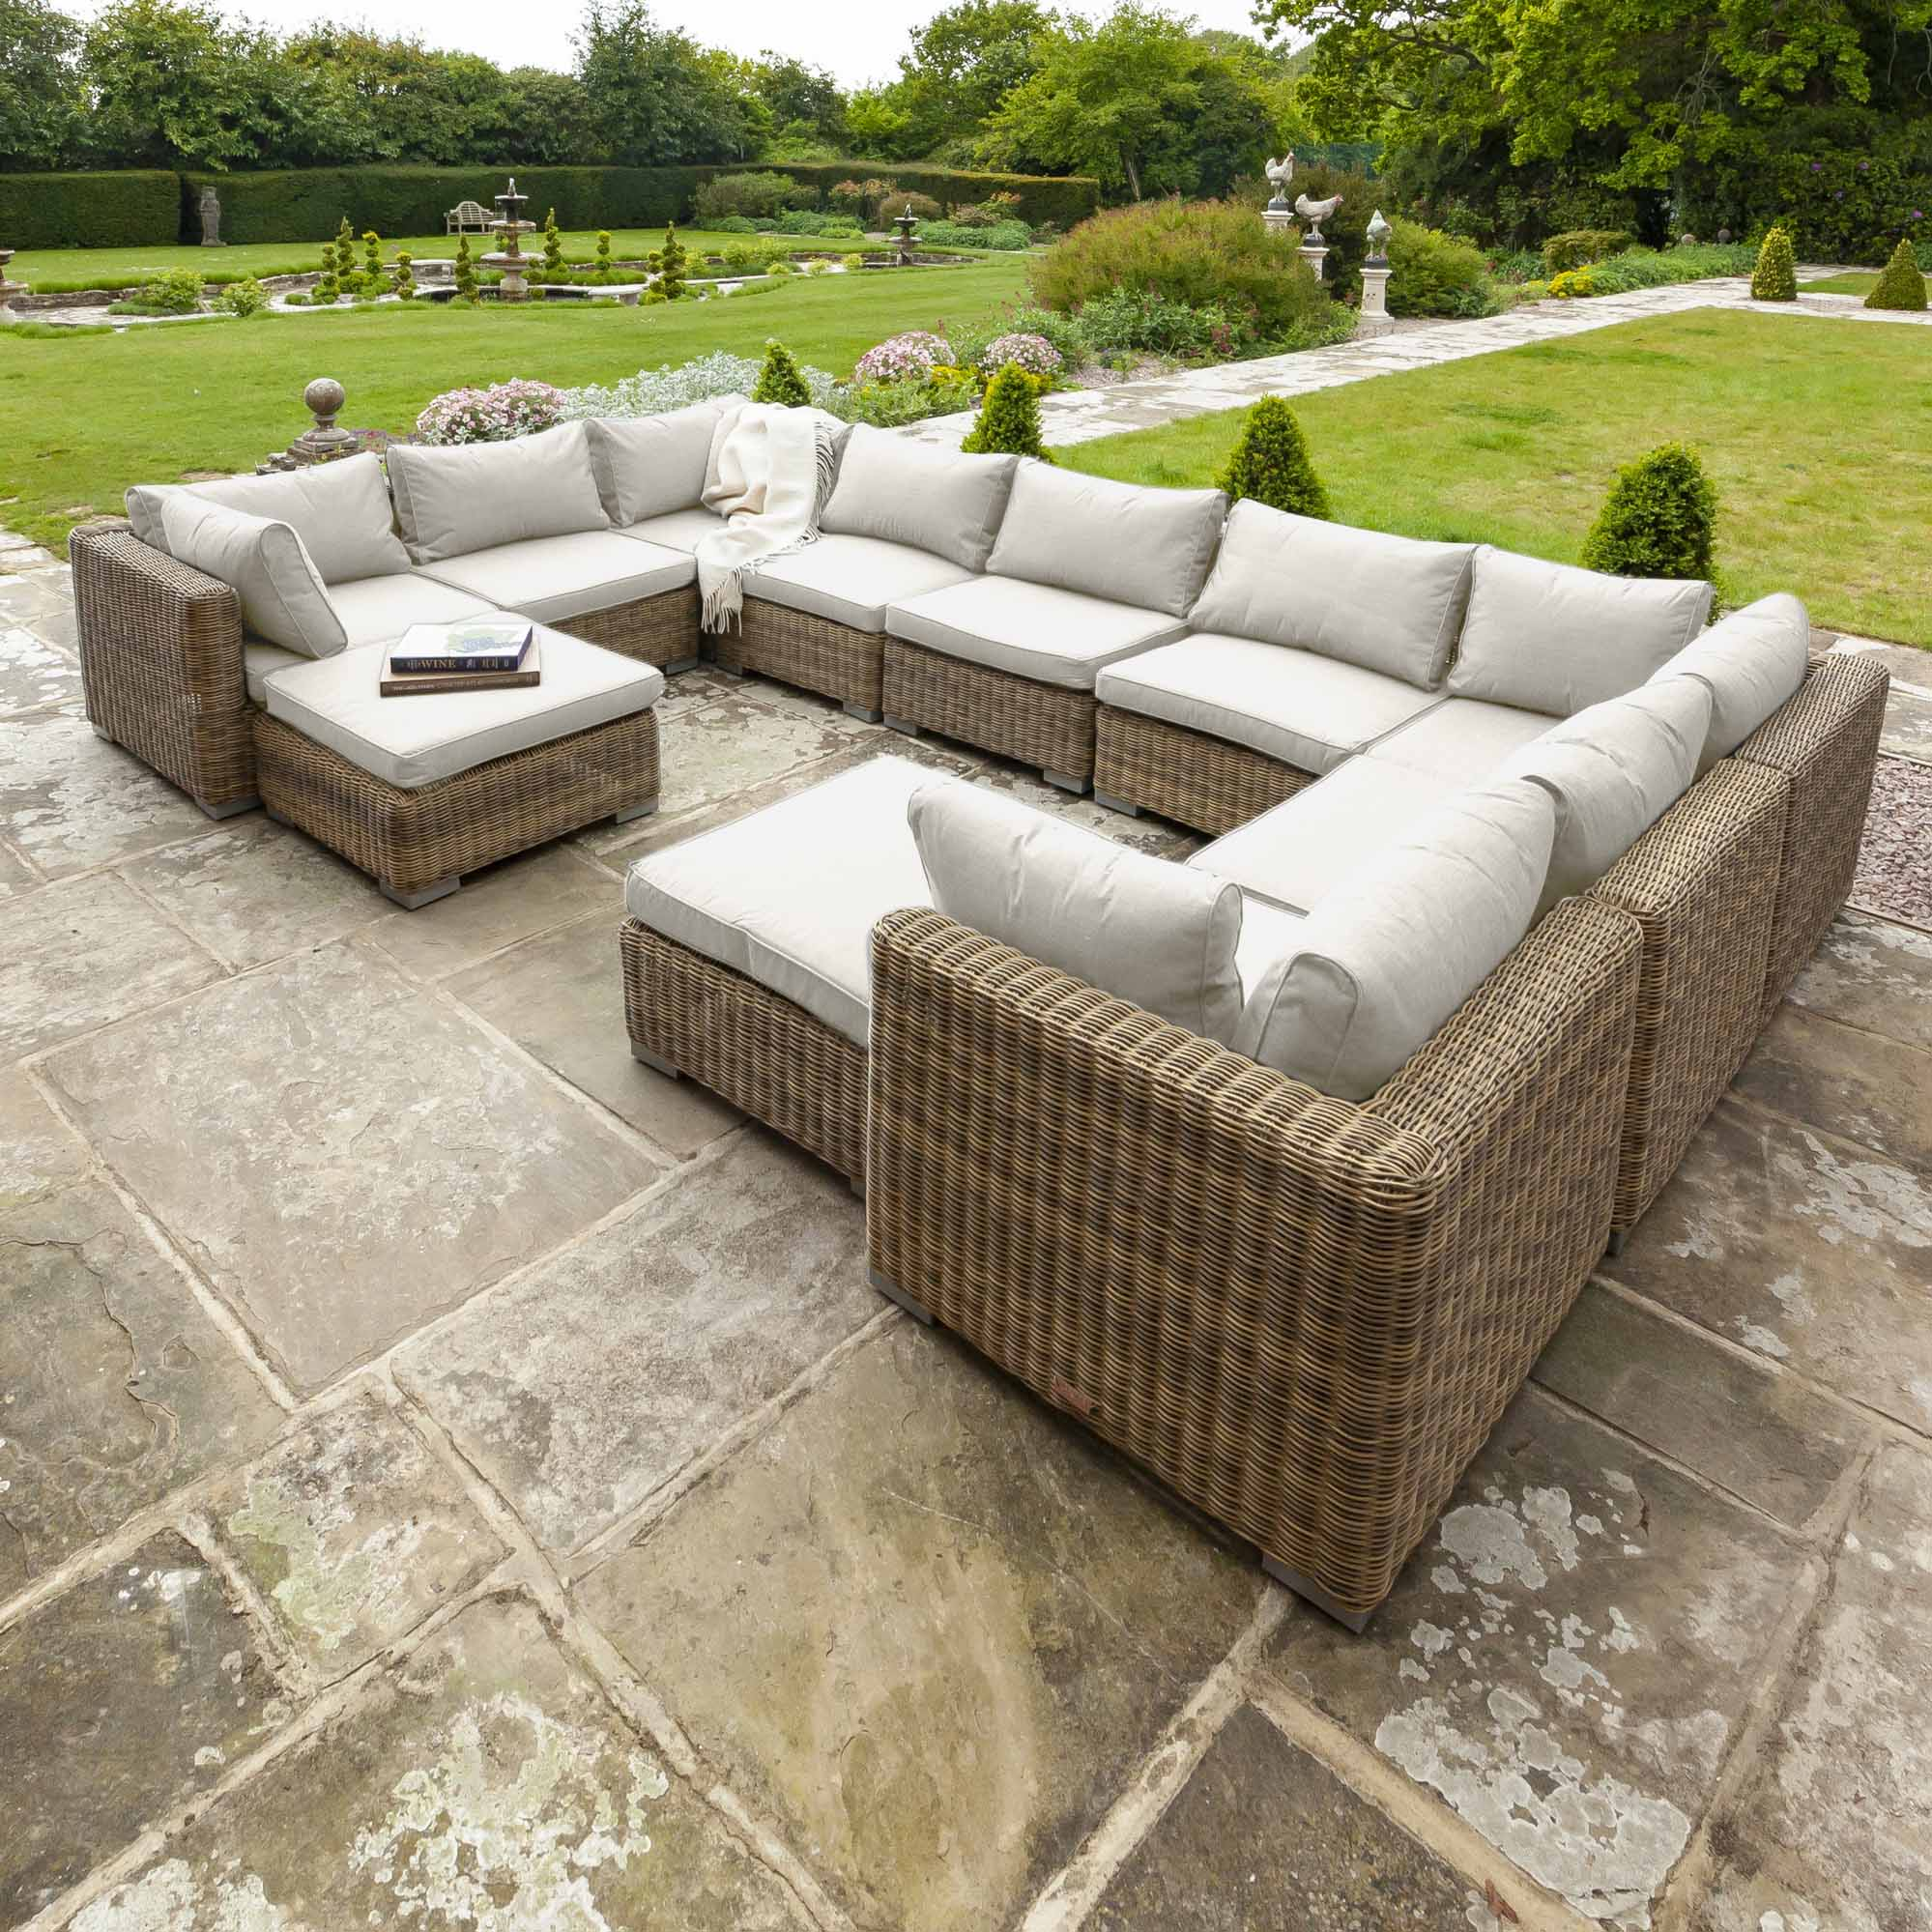 Livingstone Sofa Set 6